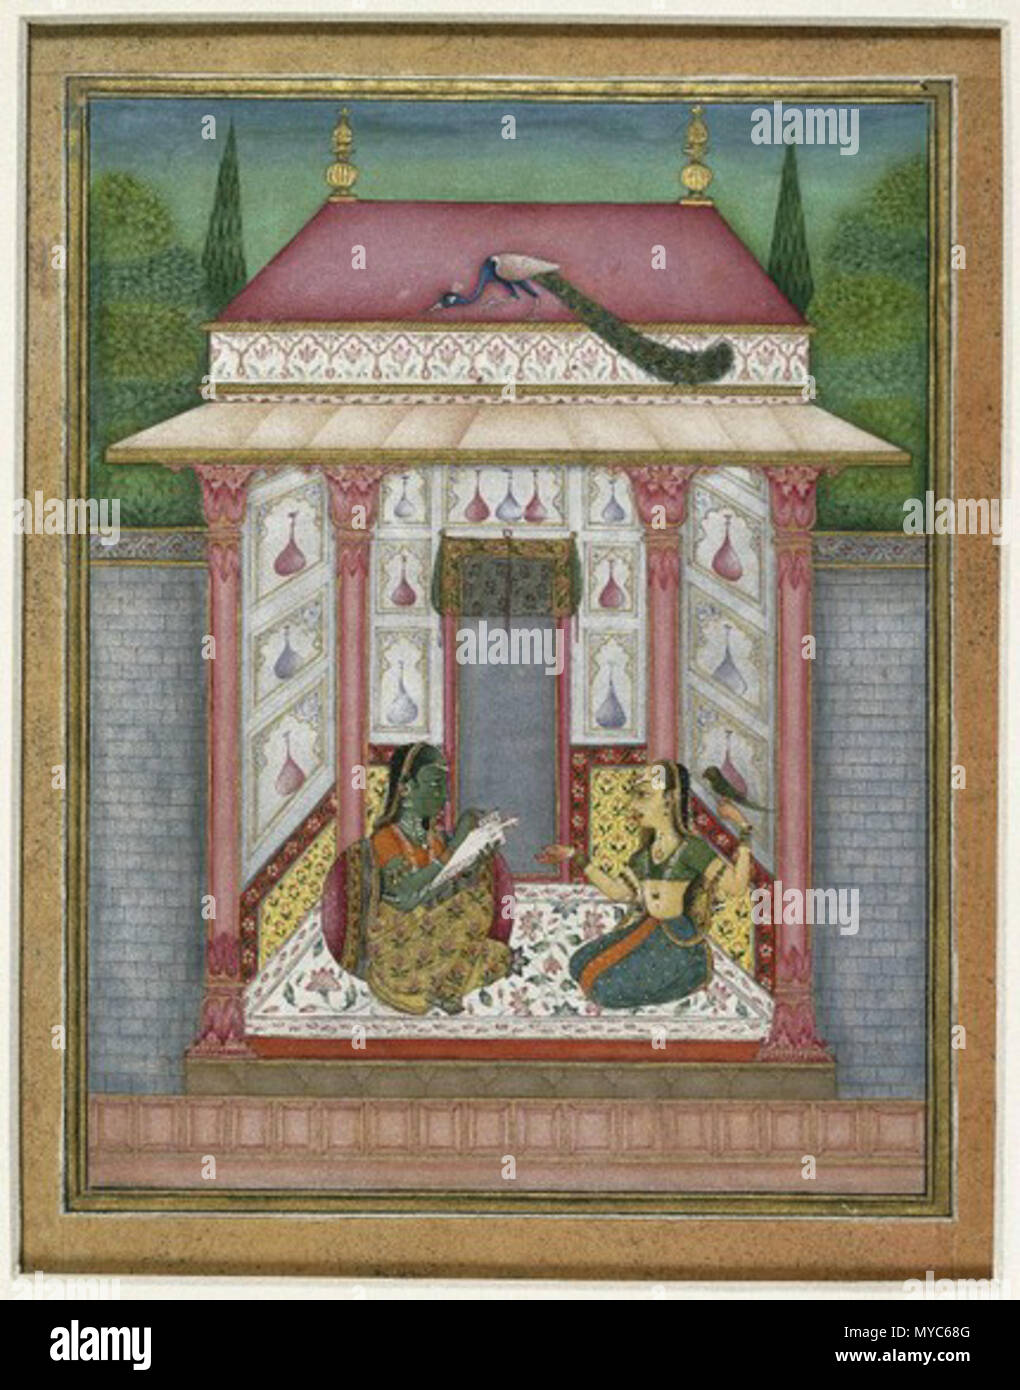 Dhanyashri Ragini Page from an illustrated Ragamala series   In the